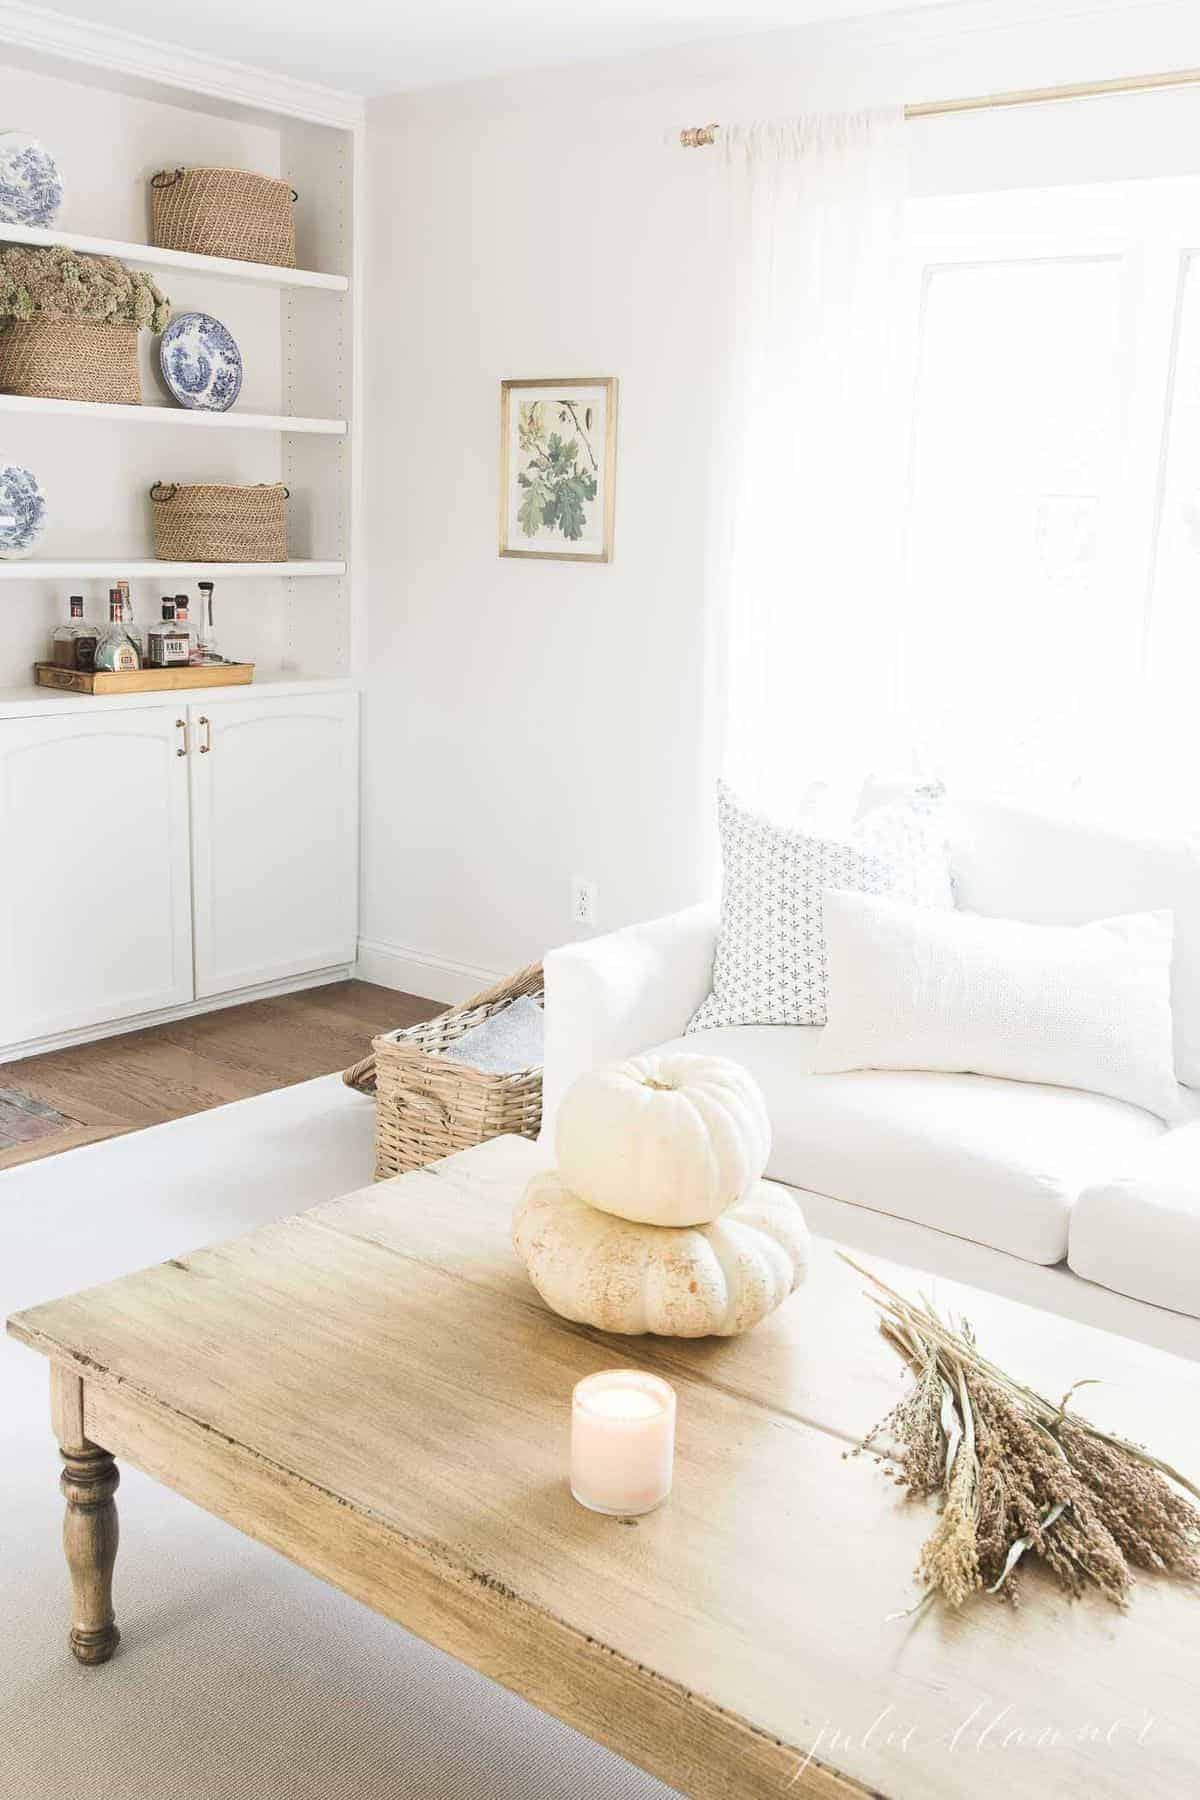 Living room featuring a white sofa, build in bookshelves, and fall decor such as a candle, fall foliage and white pumpkins on coffee table in foreground. #fallliviingroom #harvestdecor